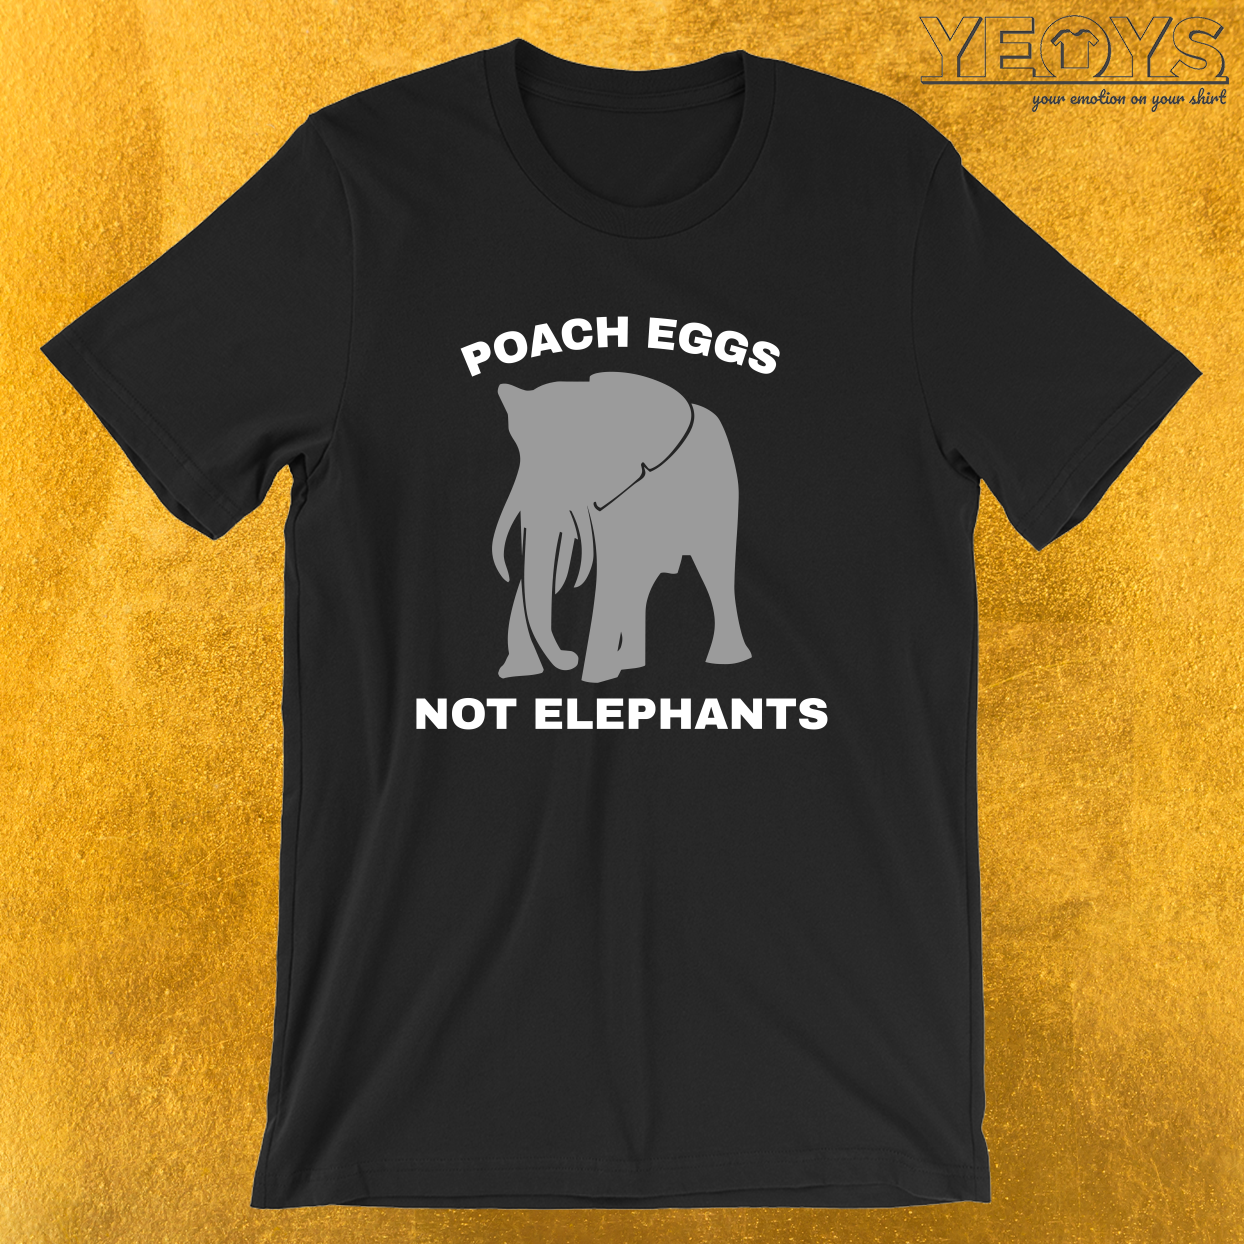 Poach Eggs Not Elephants – Stop Poaching Tee